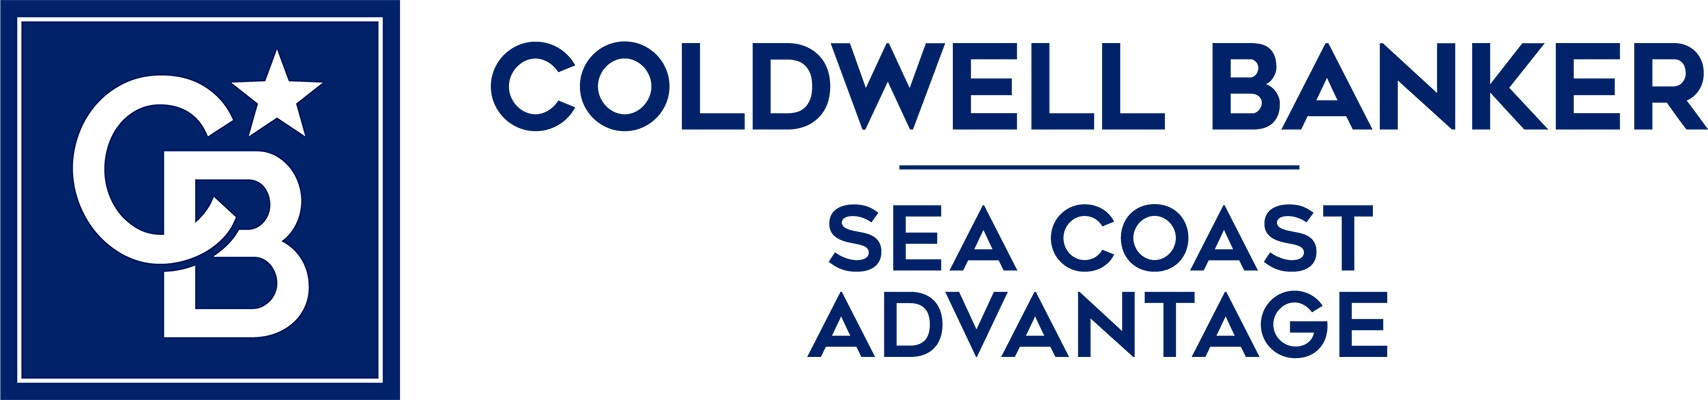 Francisca Oller - Coldwell Banker Sea Coast Advantage Realty